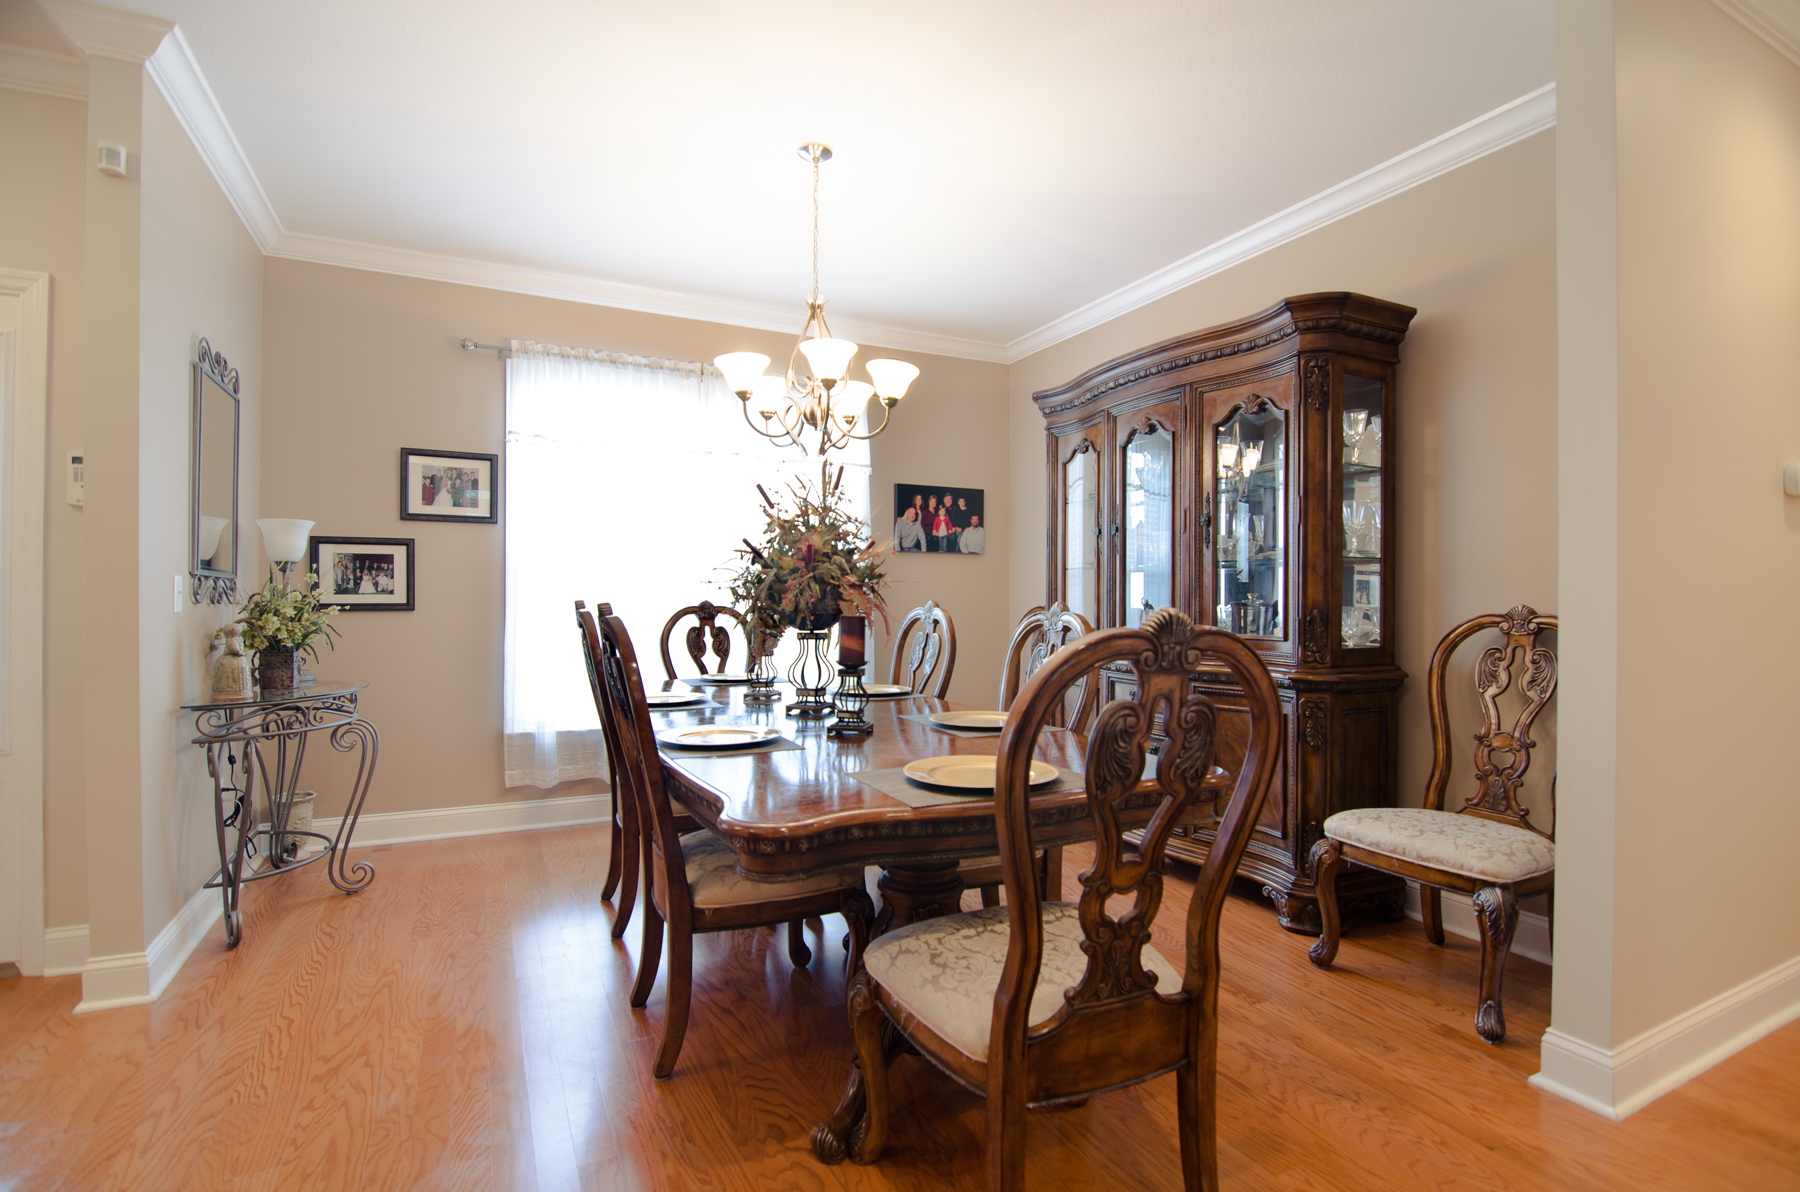 3riversrealty-diningroom.jpg